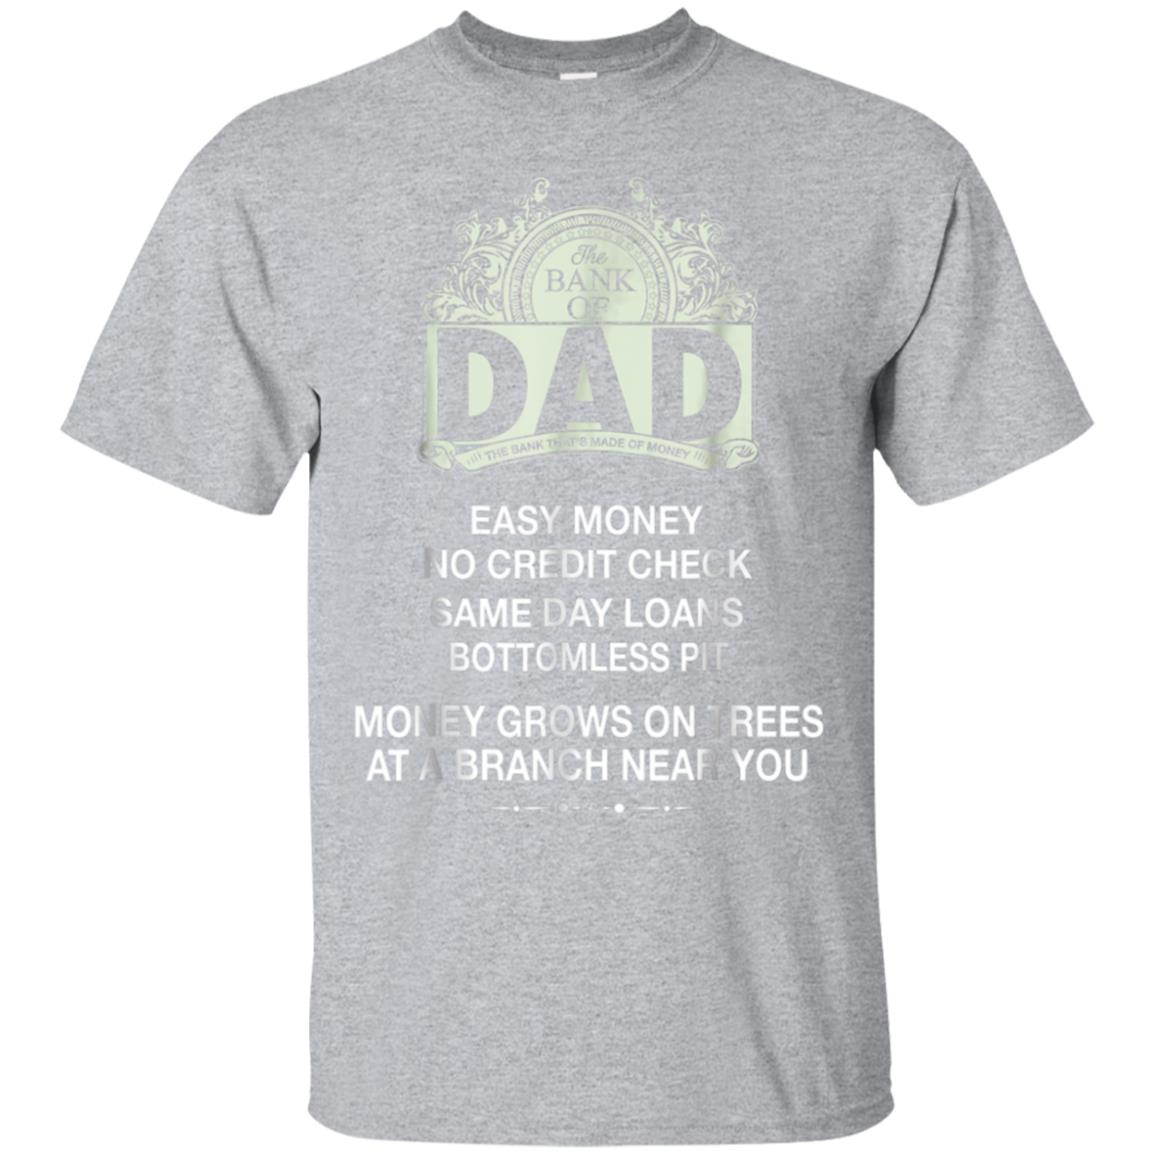 Bank of Dad funny T-shirt 99promocode